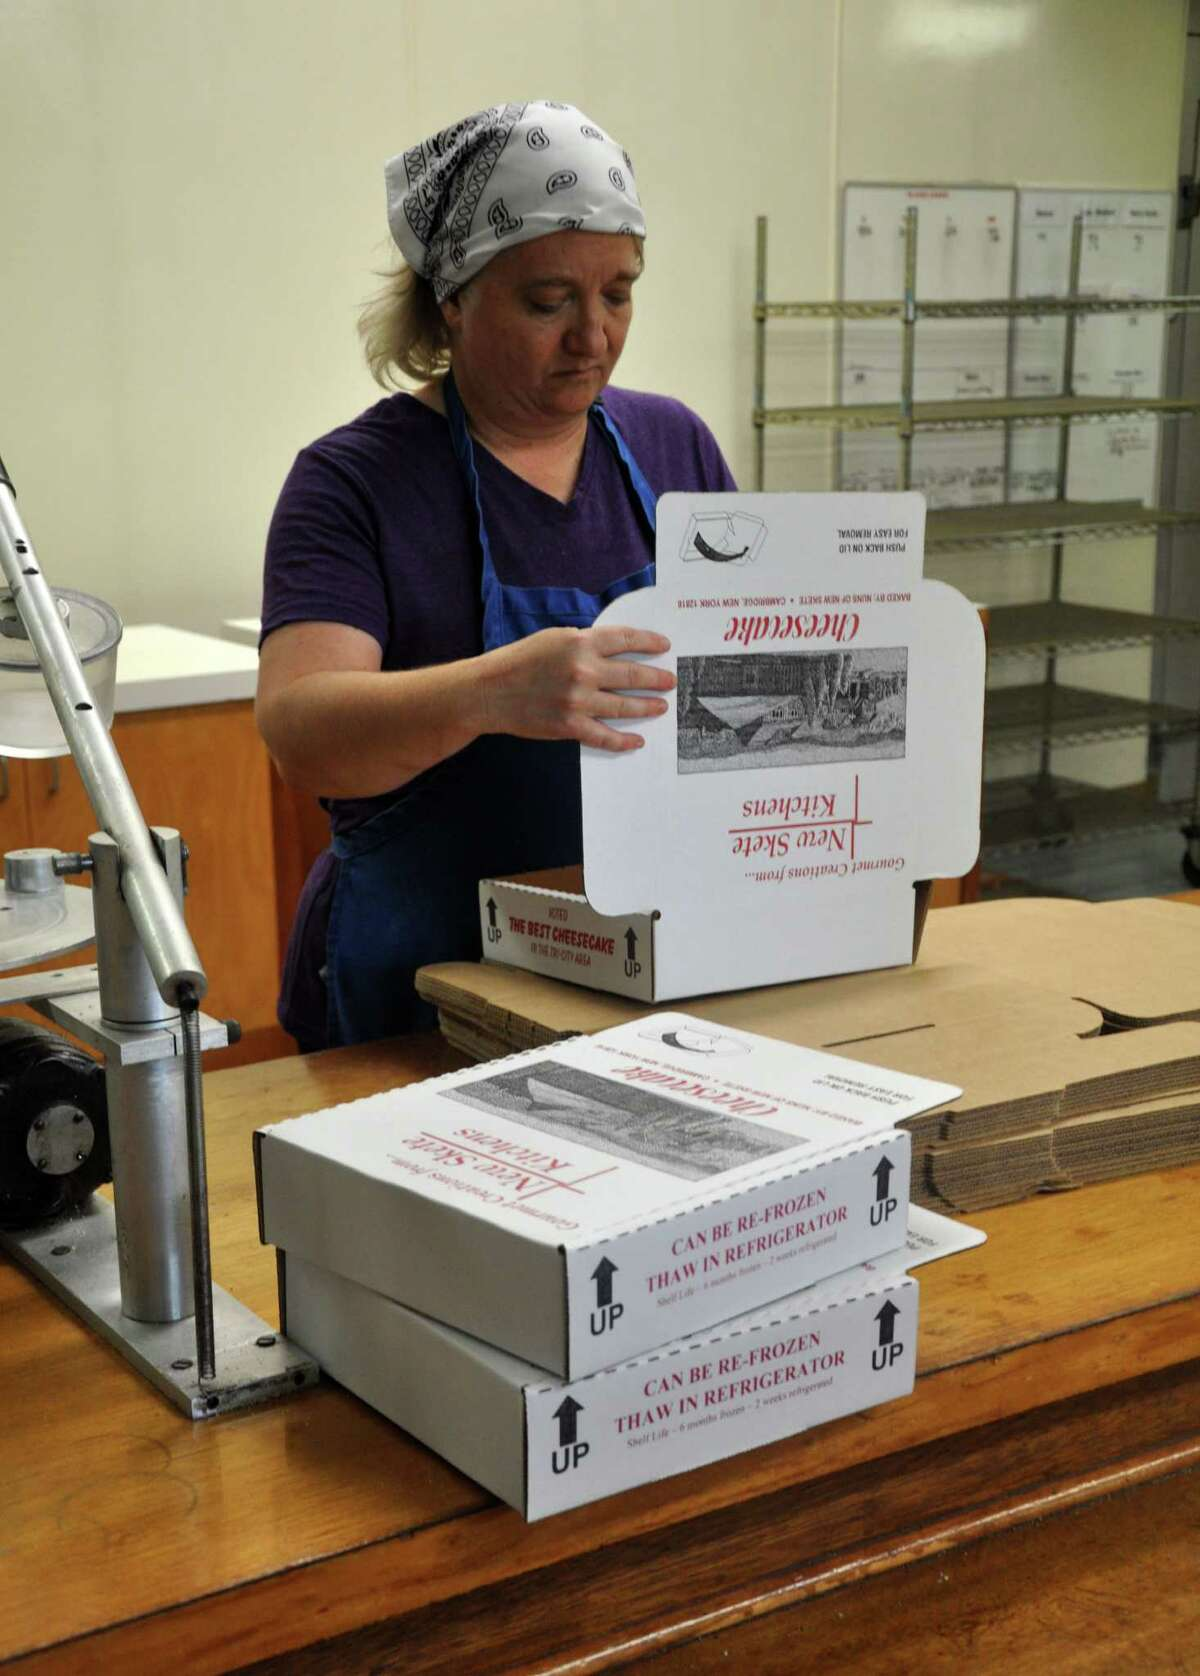 Kate Smith, an employee at the monastery, makes boxes for the cheesecake at New Skete Monastery on Wednesday, Aug. 3, 2016 in Cambridge, N.Y. The monastery will soon be celebrating its 50th anniversary. (Eliza Mineaux/Special to the Times Union)